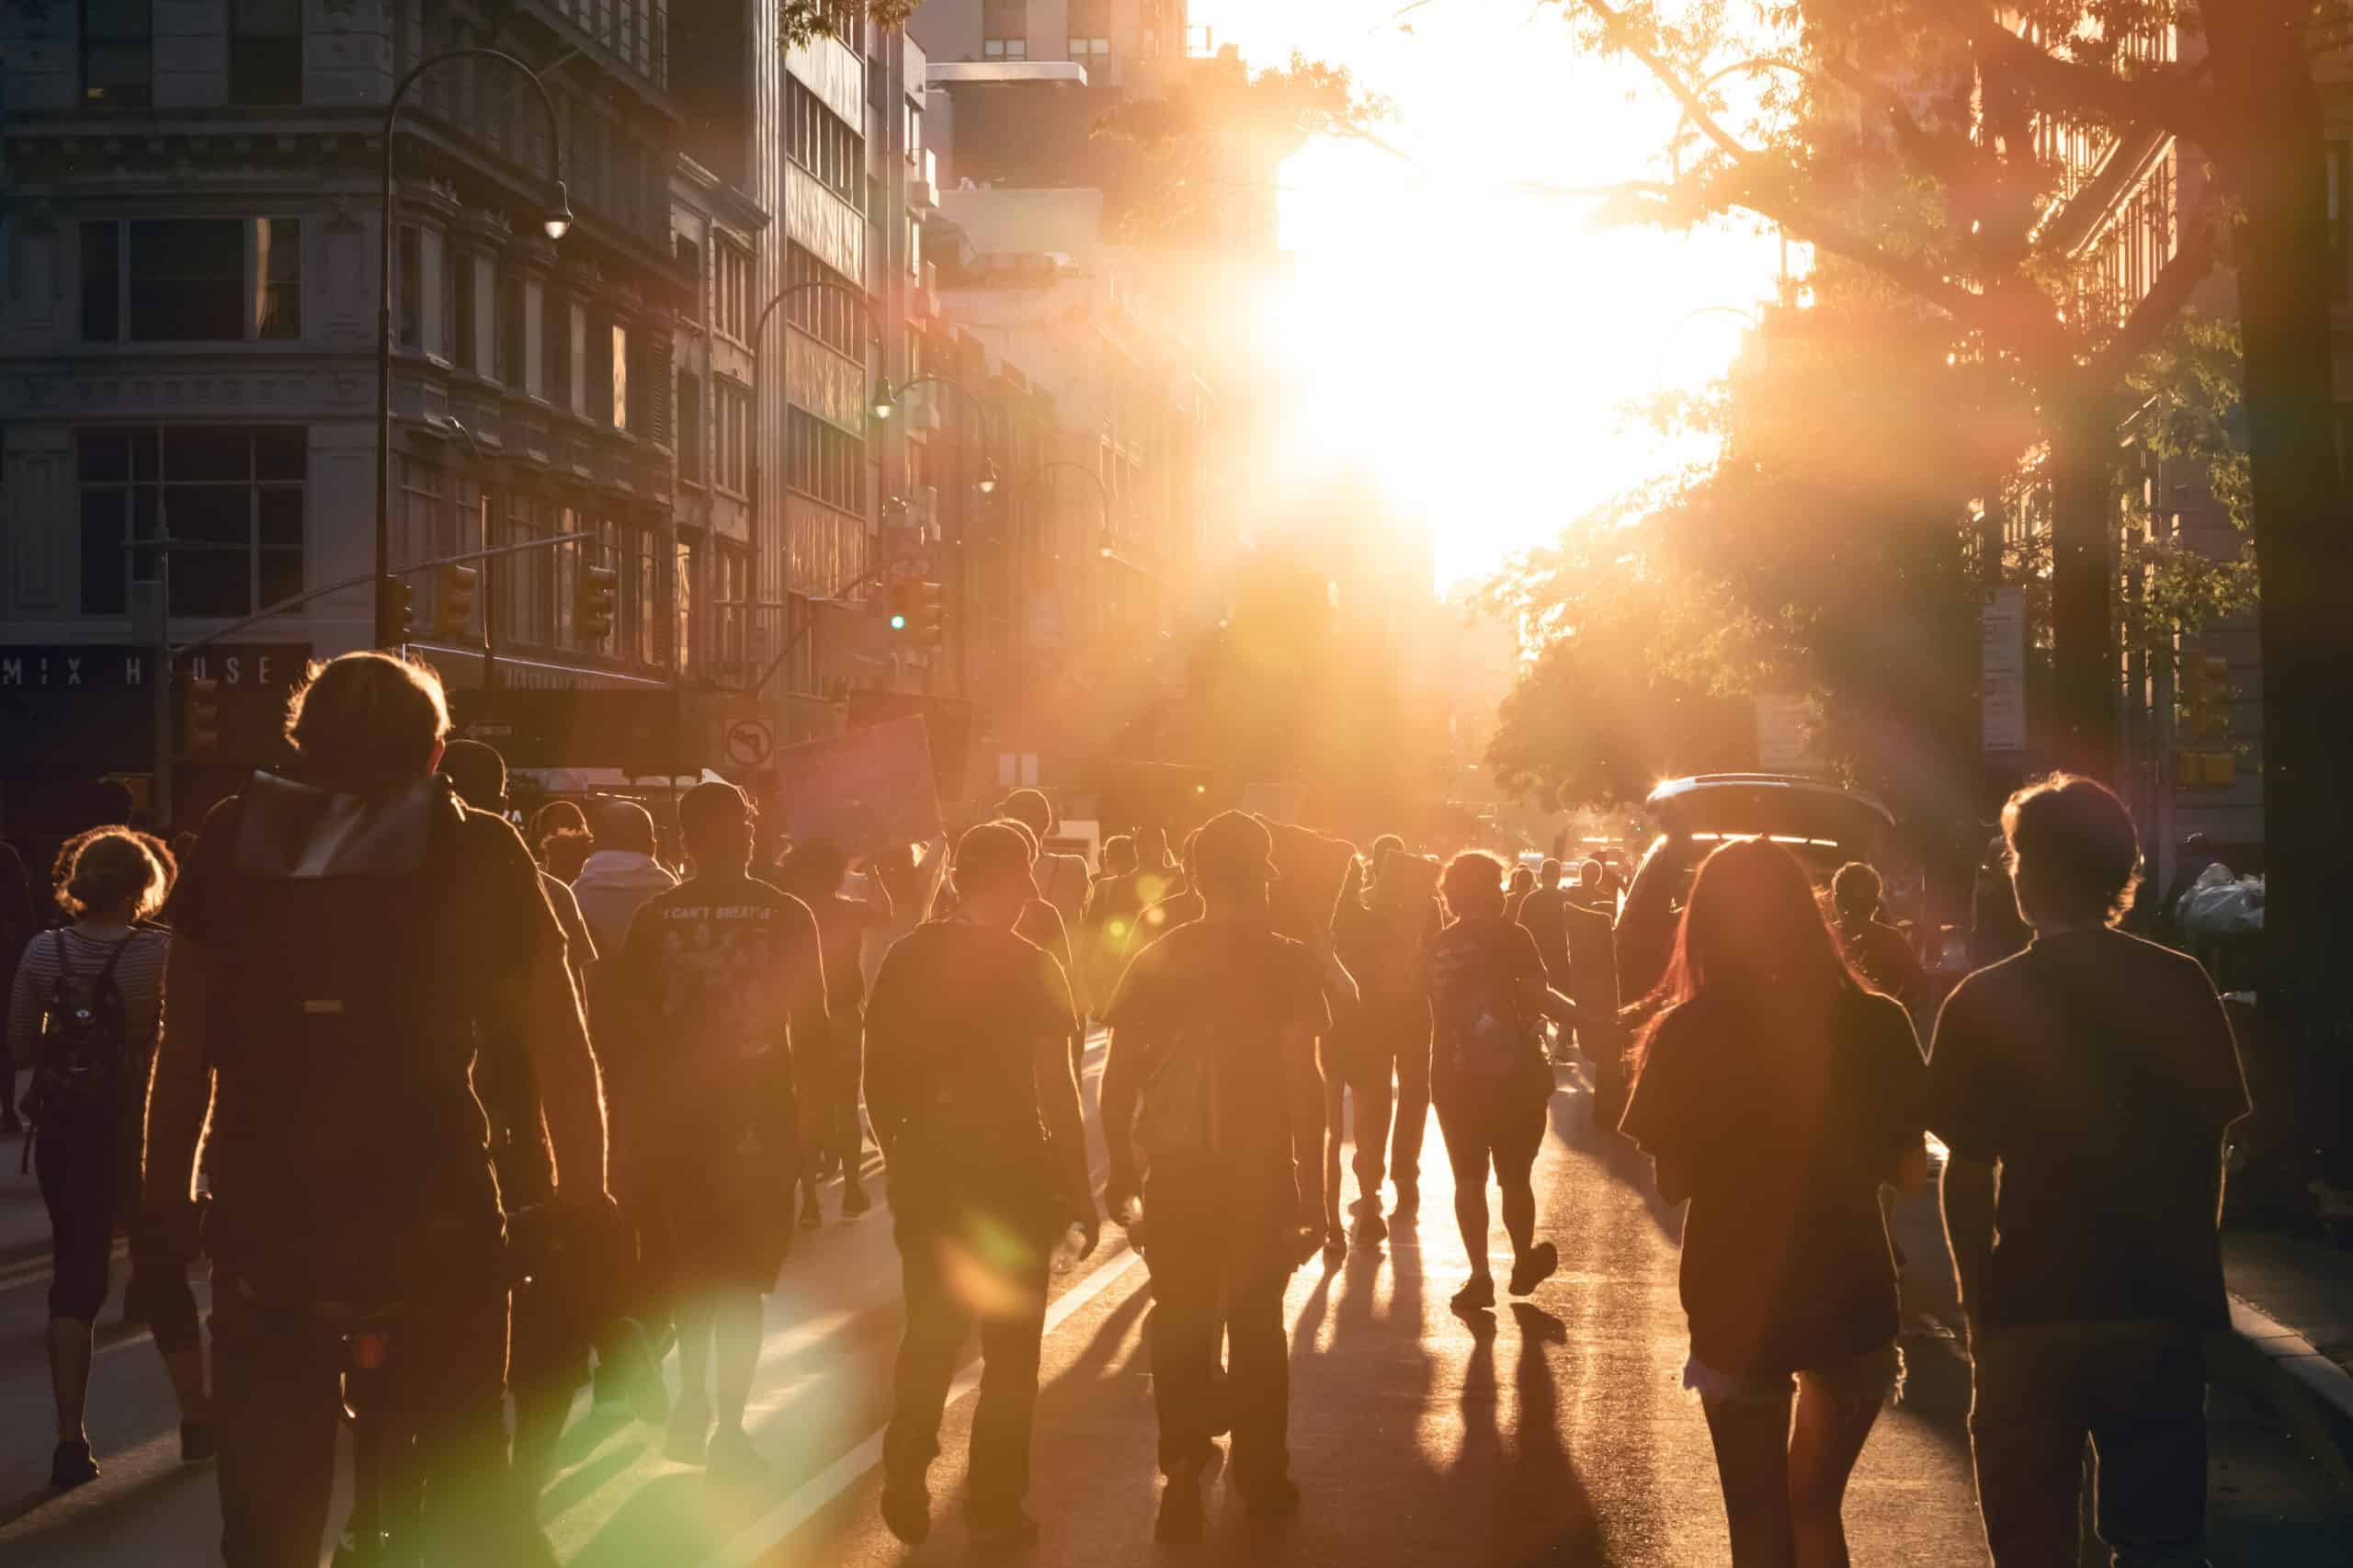 NEW YORK CITY, USA - JUNE 12, 2020: Crowd of people walk into the light of sunset at a peaceful protest march on 14th Street in Manhattan.